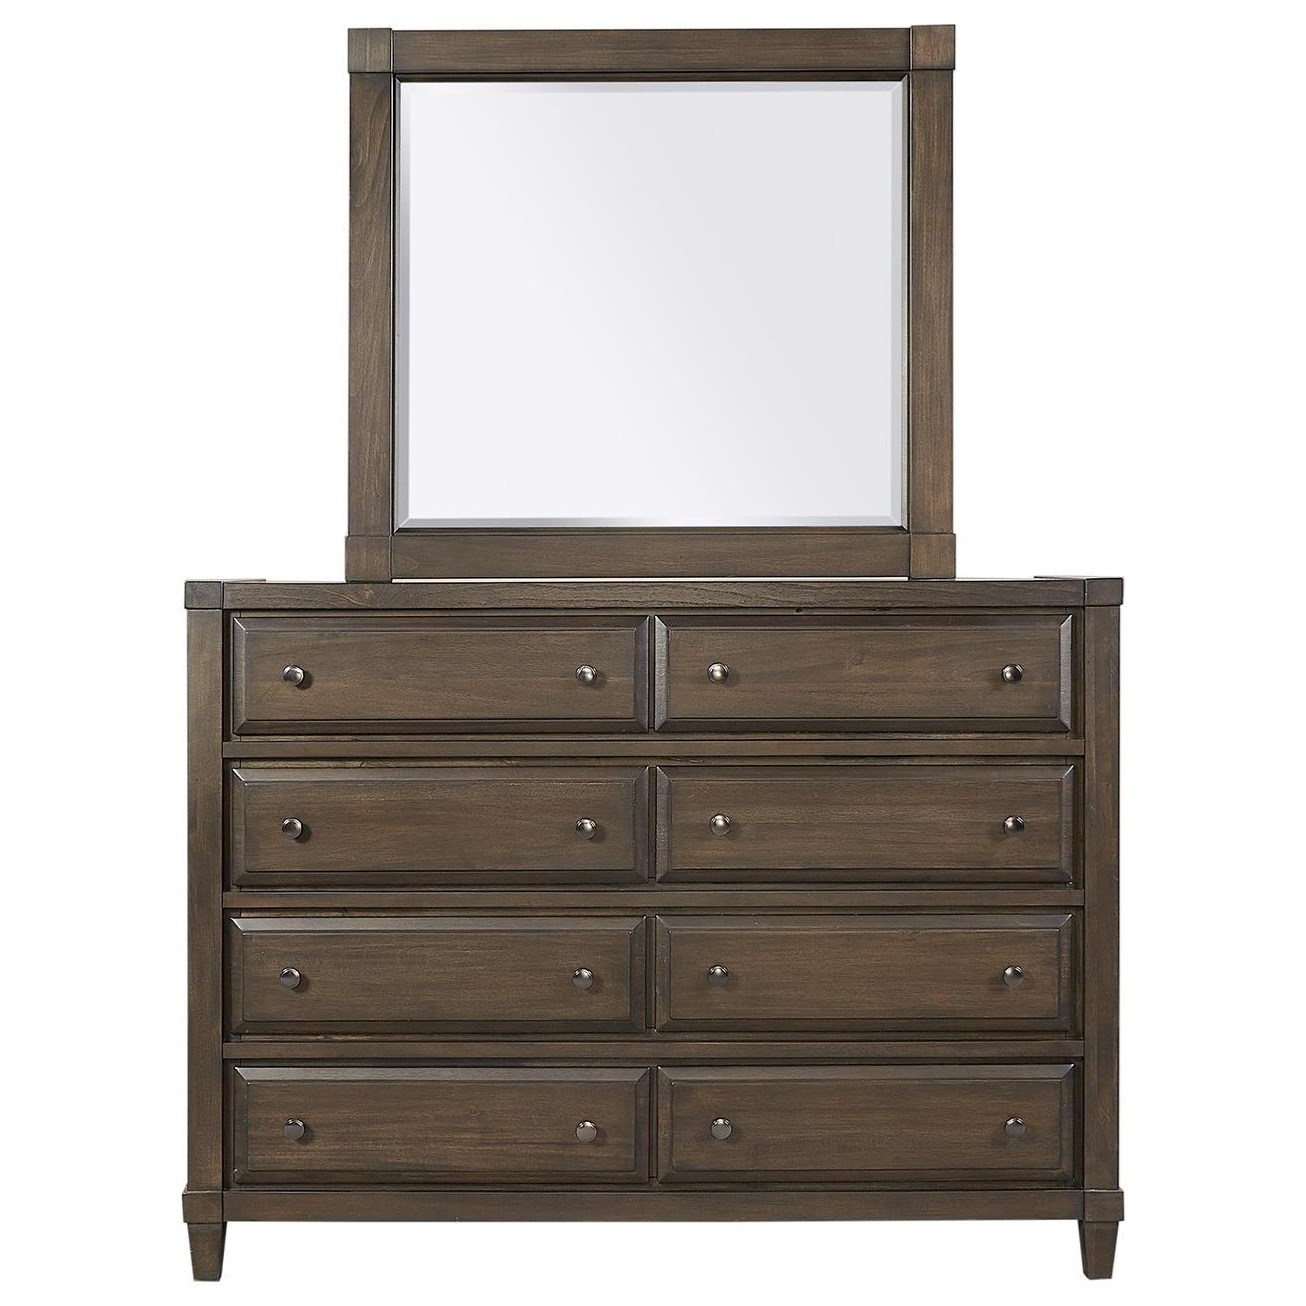 Easton Chesser and Mirror Combination by Aspenhome at Stoney Creek Furniture